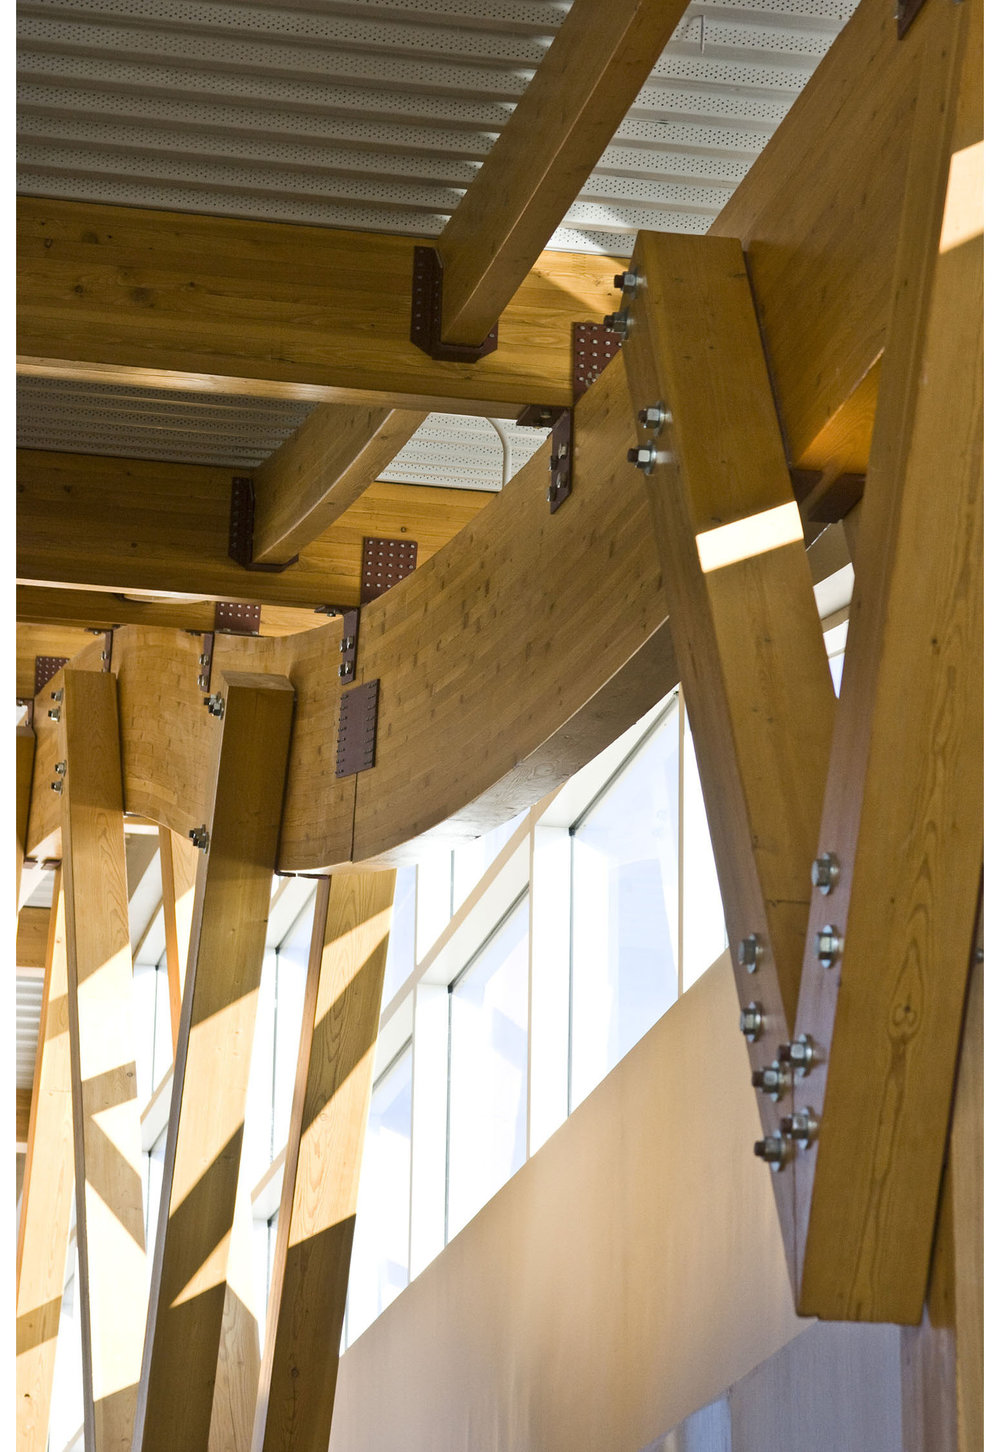 Sunova Credit Union, interior photo of building structural system / Photo: Tracy A Wieler